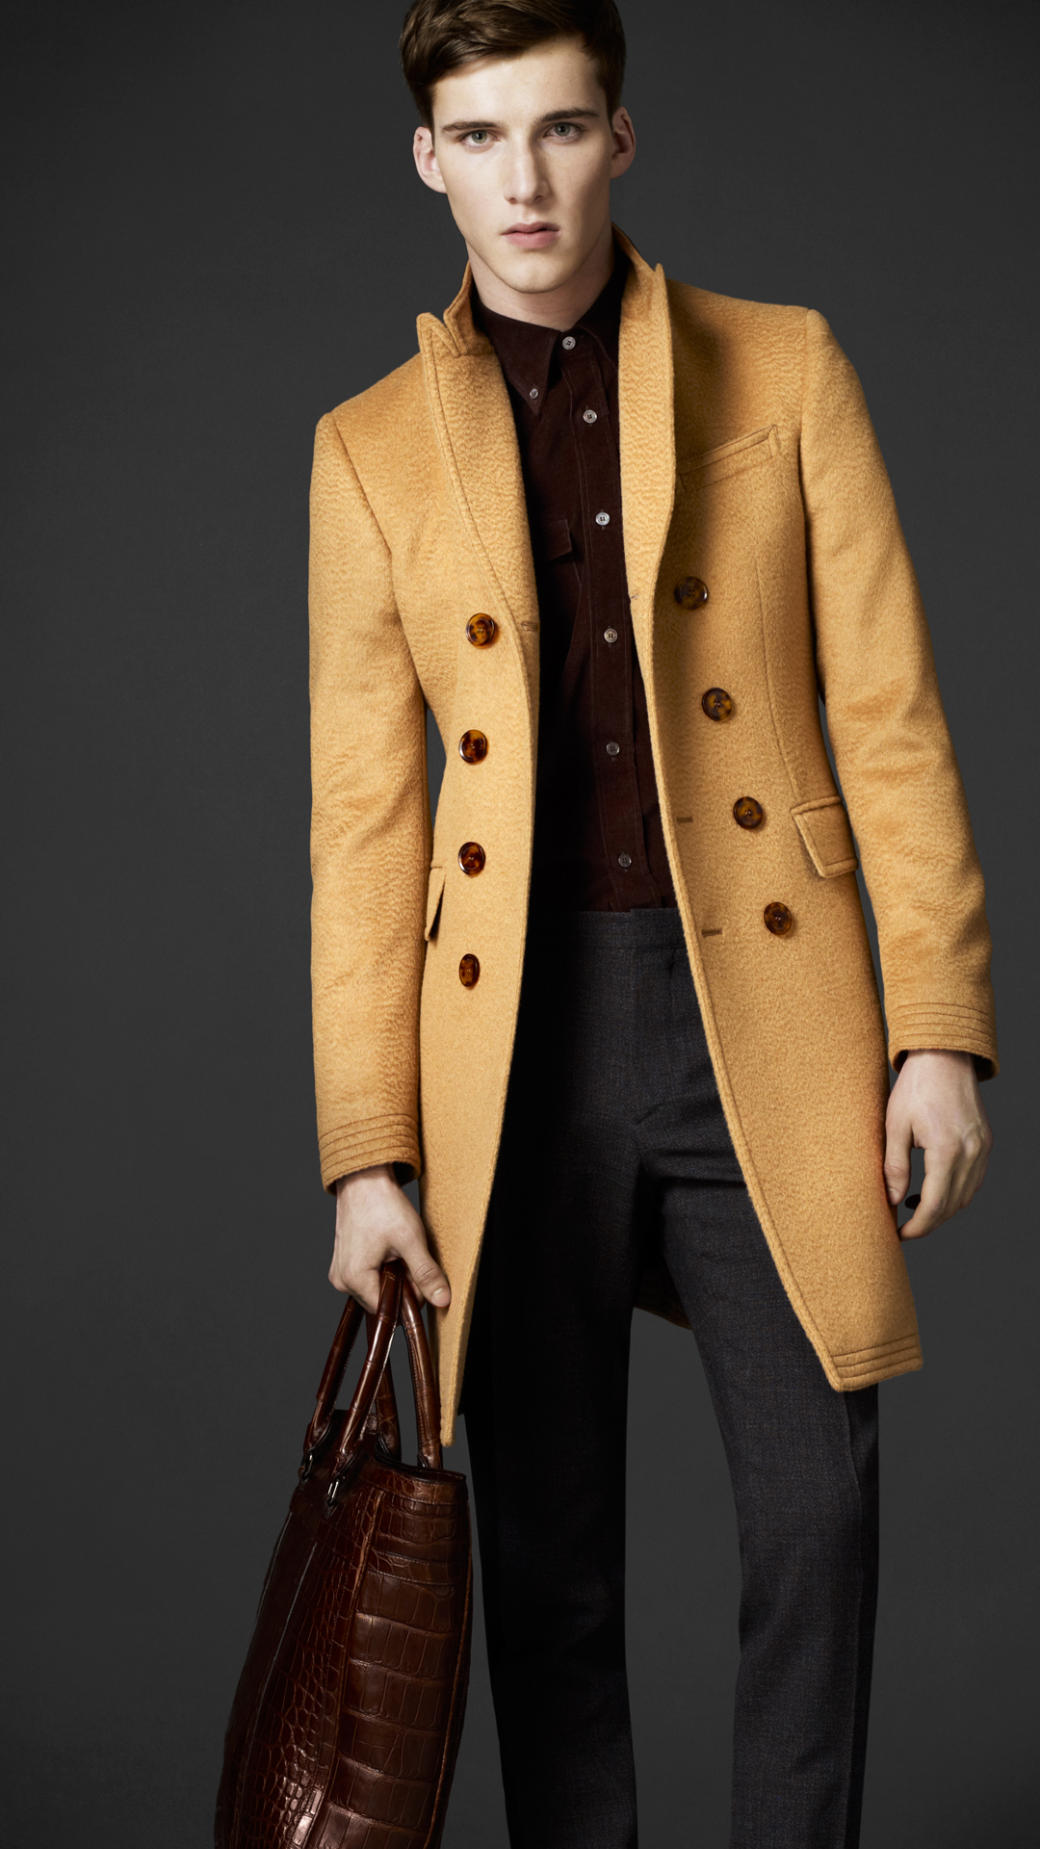 Lyst - Burberry Camel Hair Top Coat in Natural for Men 01f8a9ed1eb3